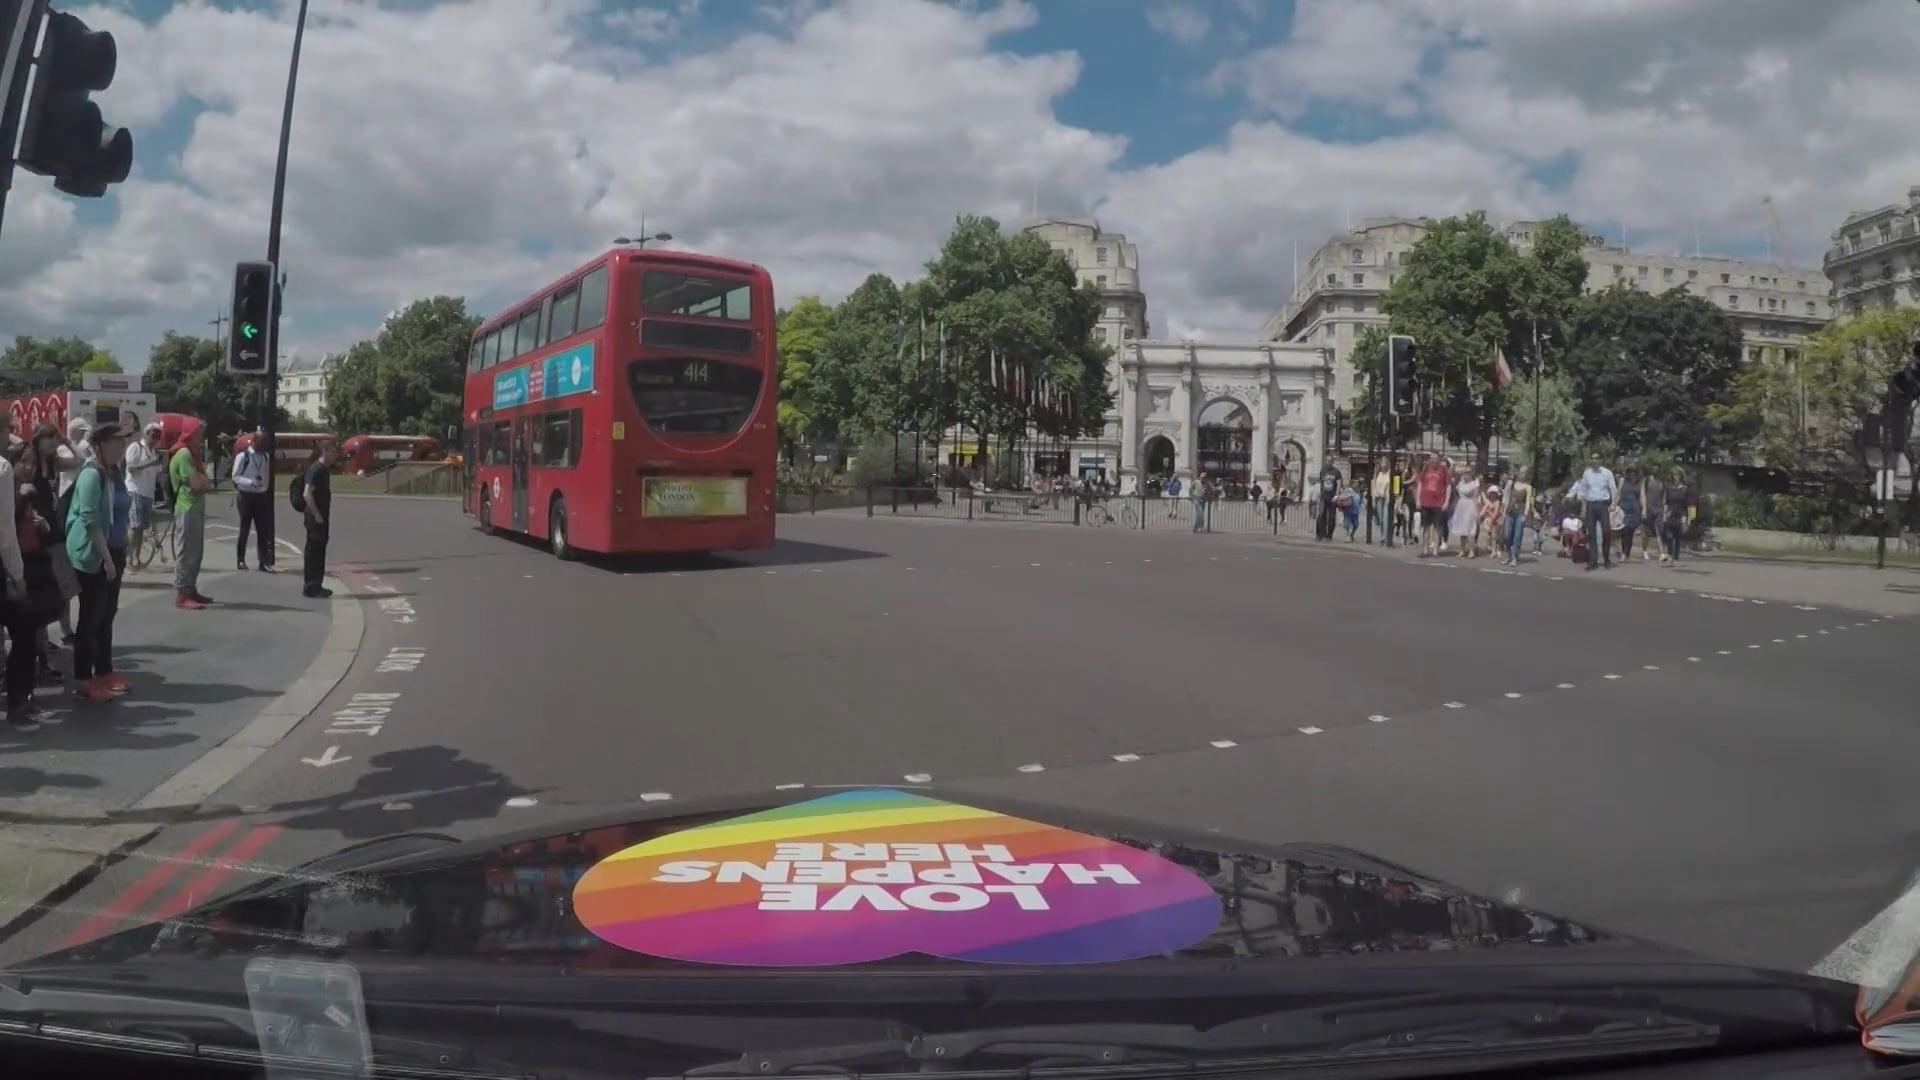 Excerpt: London Pride Taxi: Peter Tatchell